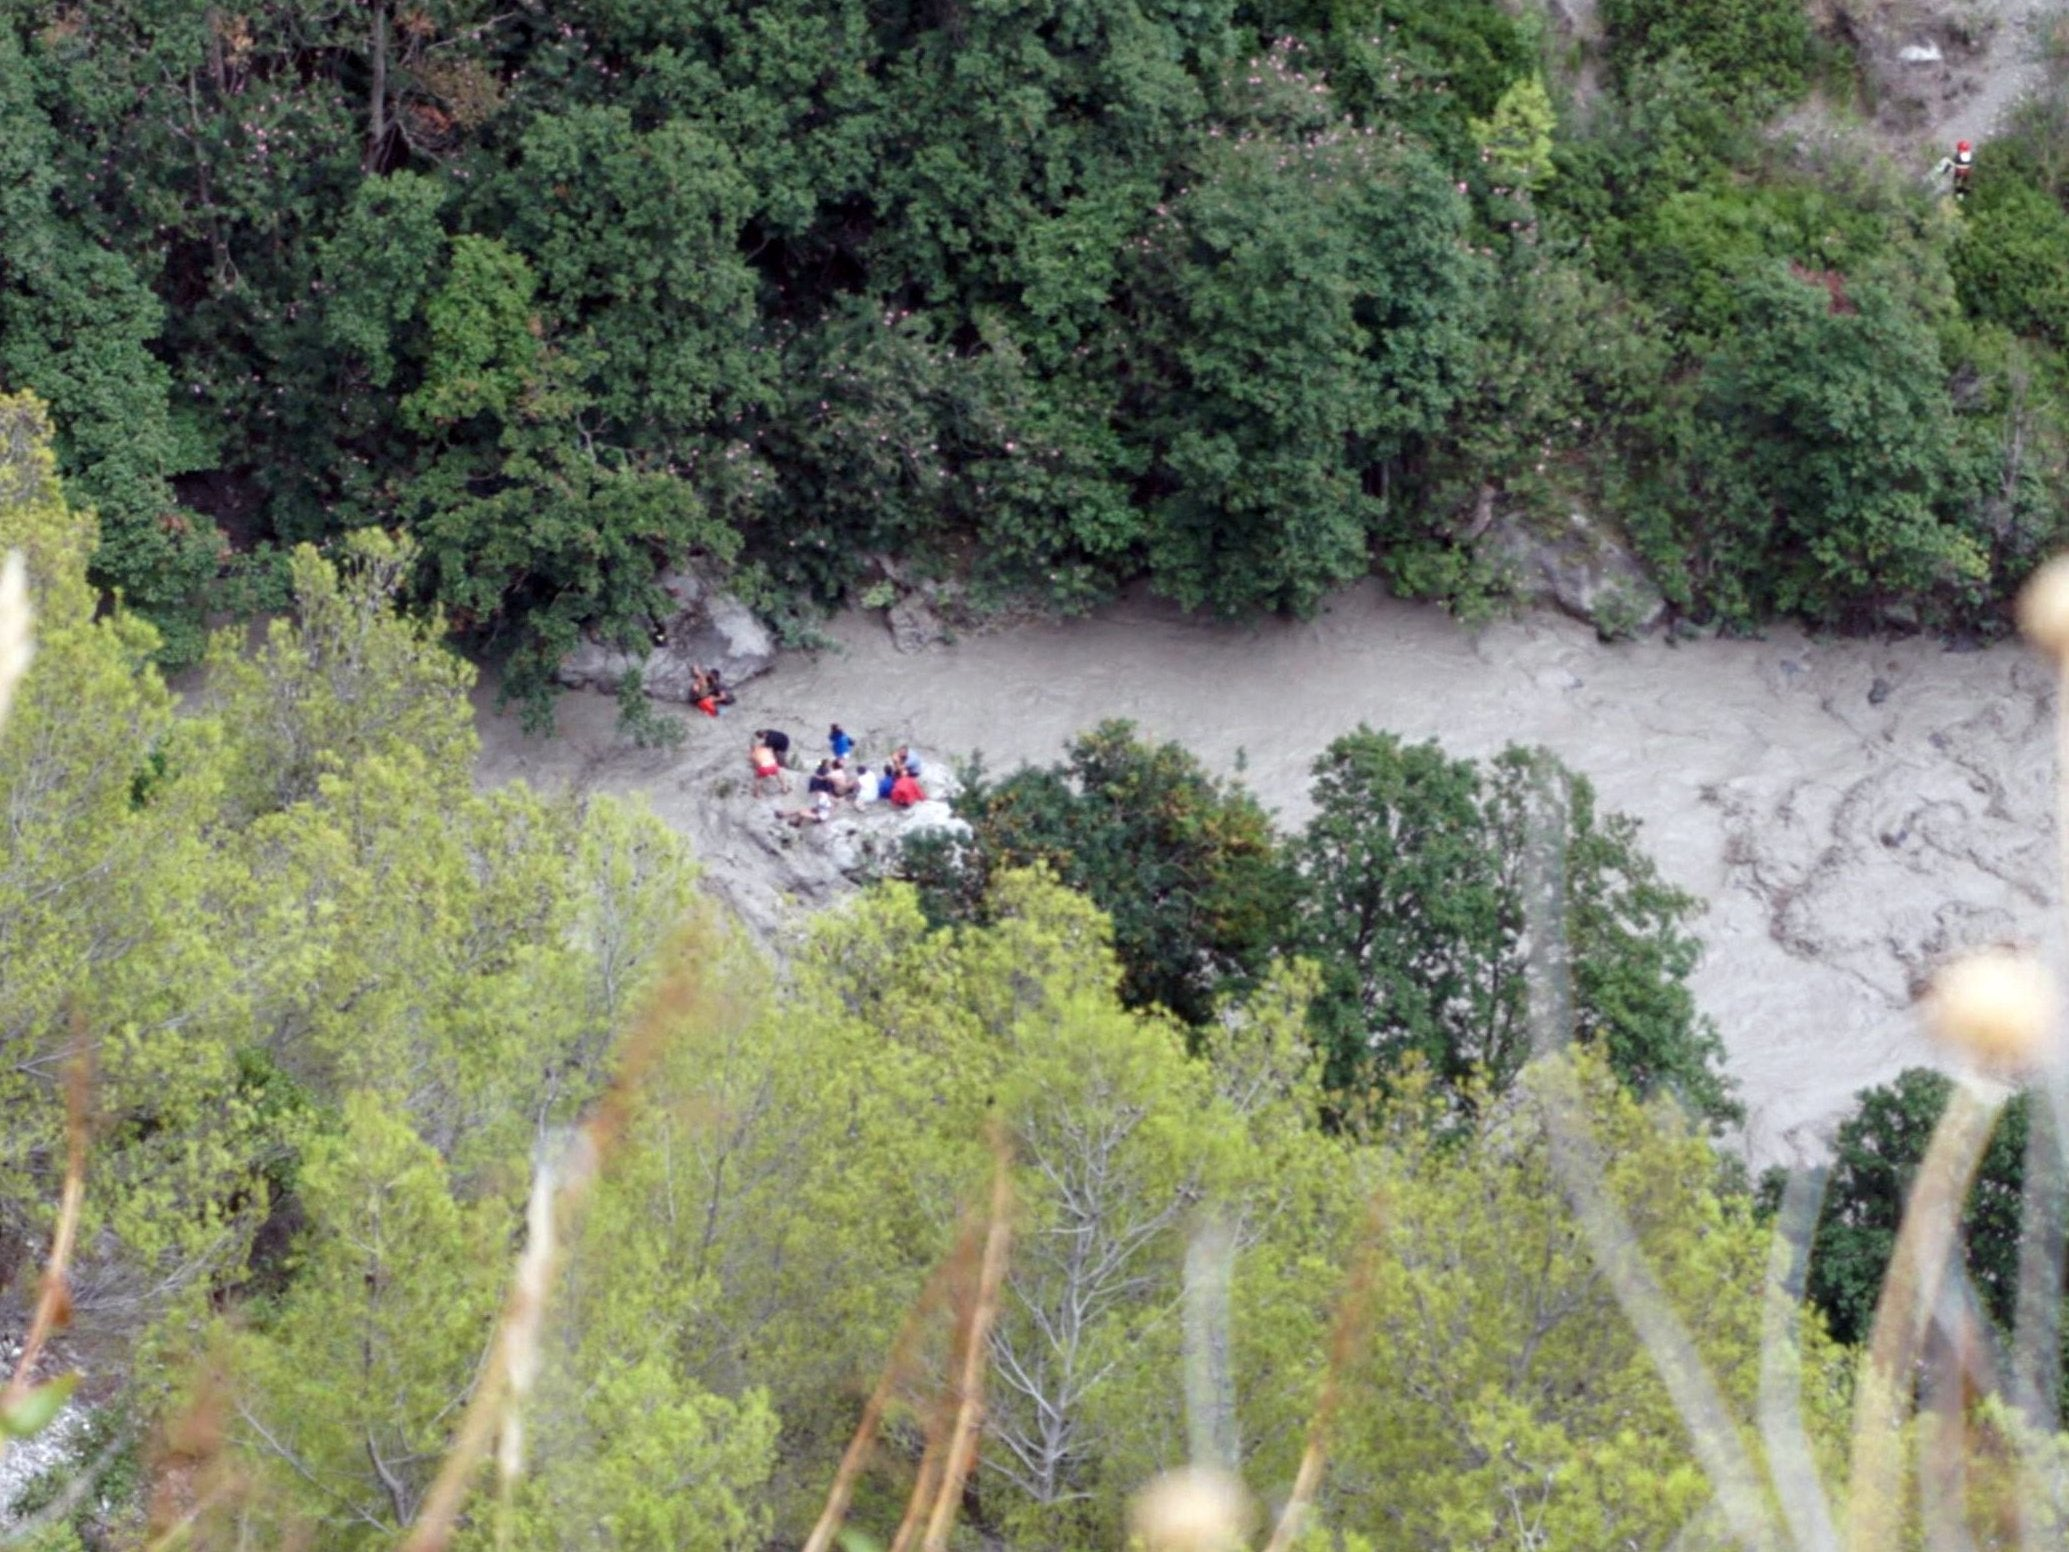 Italy flash floods kill at least 11 hikers in Calabria